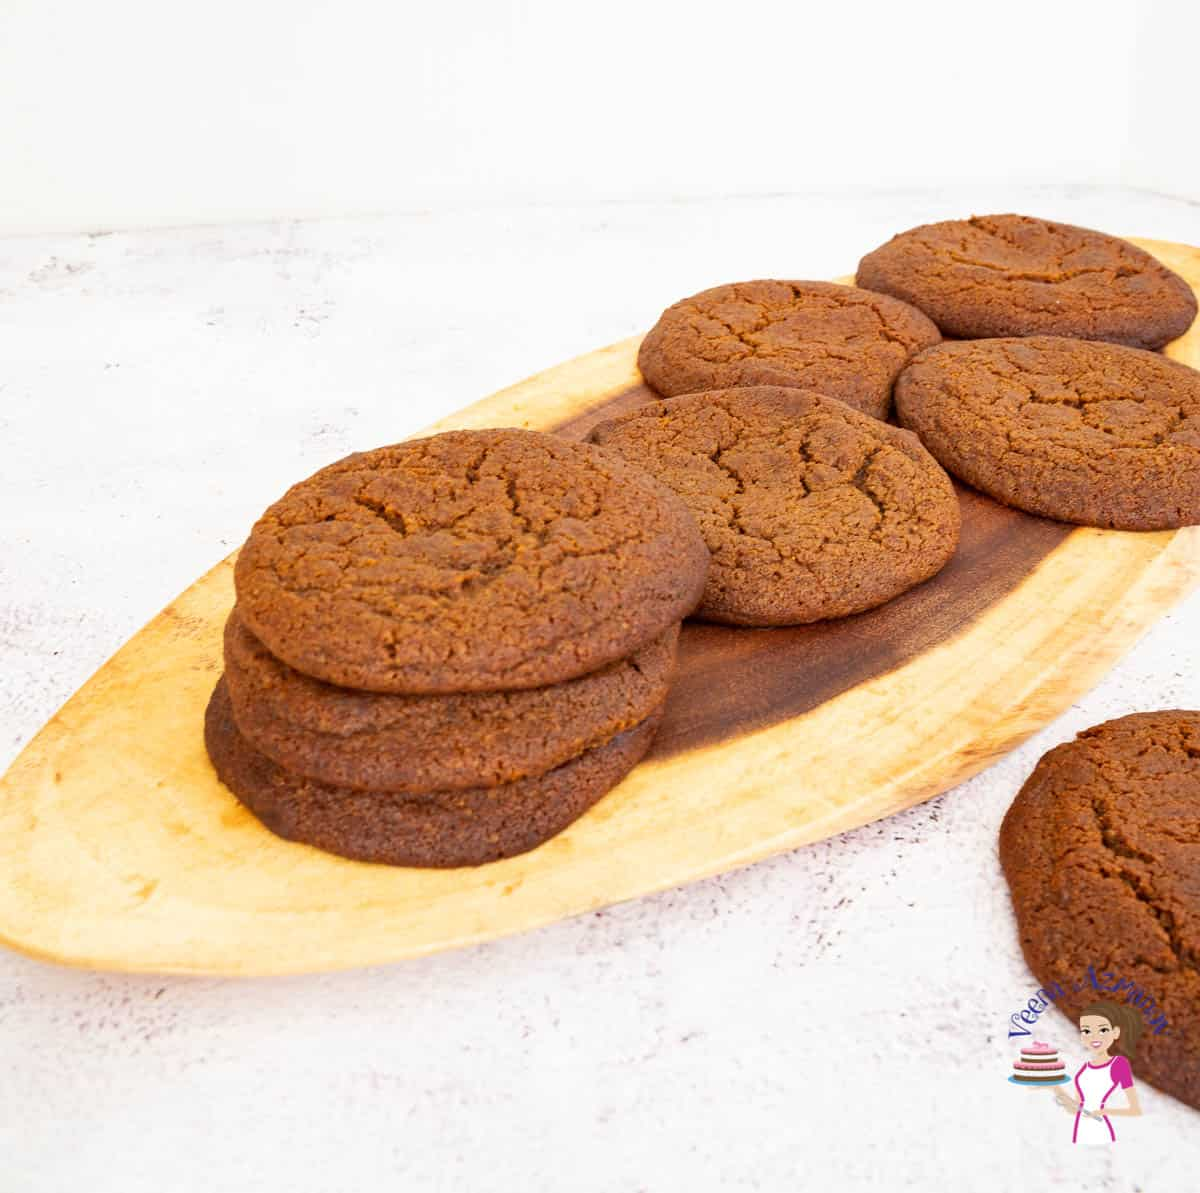 Stack of cookies on a wooden baord.